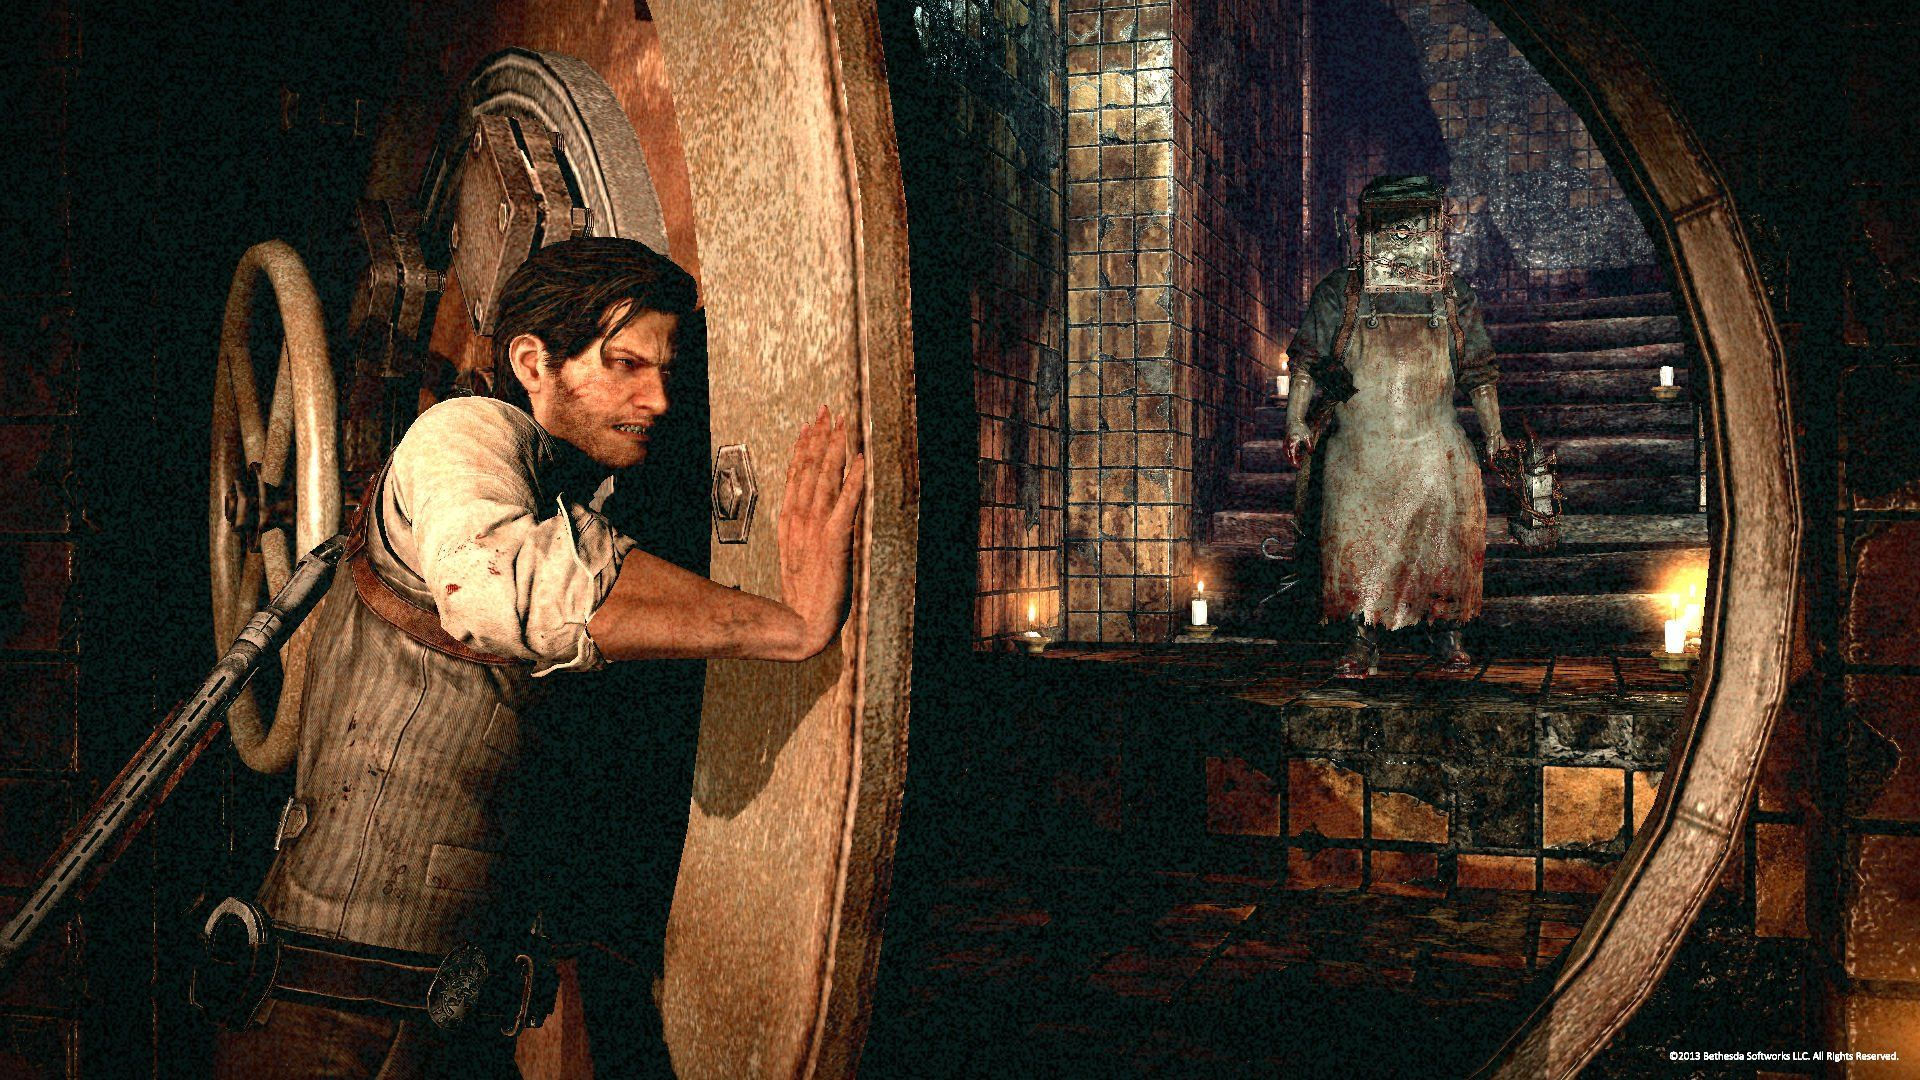 THE EVIL WITHIN Survival Horror Dark Blood Gd Wallpaper